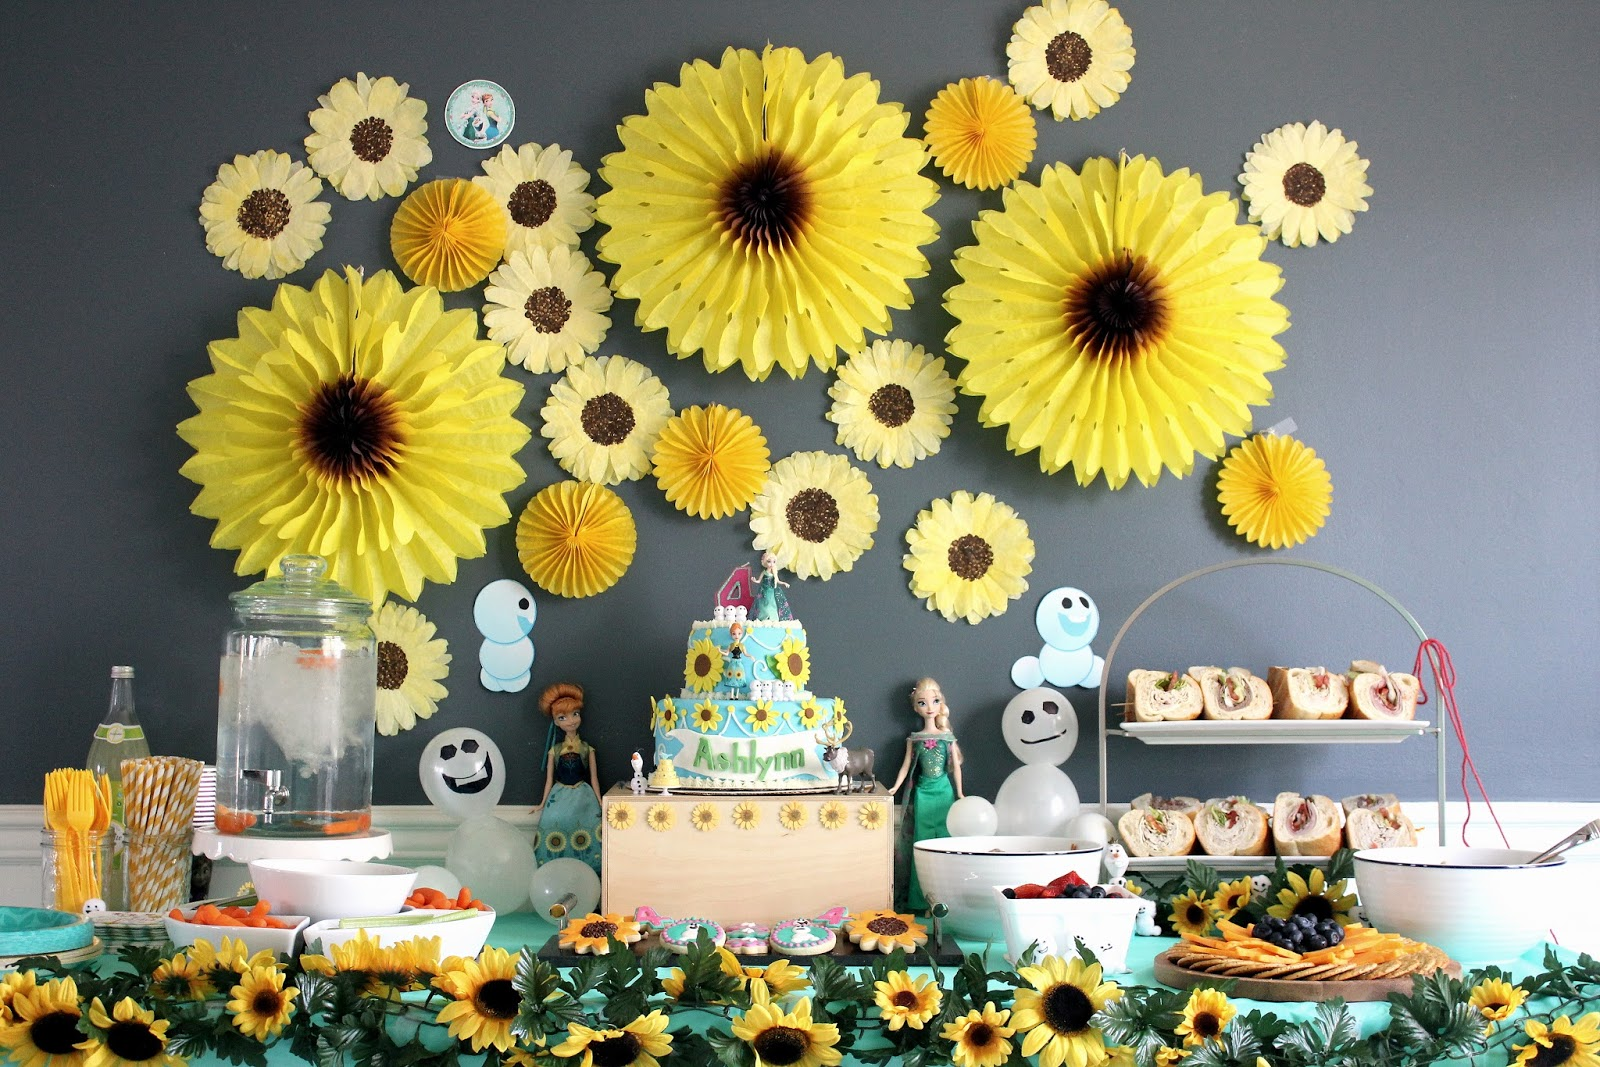 16 Best Sunflower Themed Party And Birthday Decorations